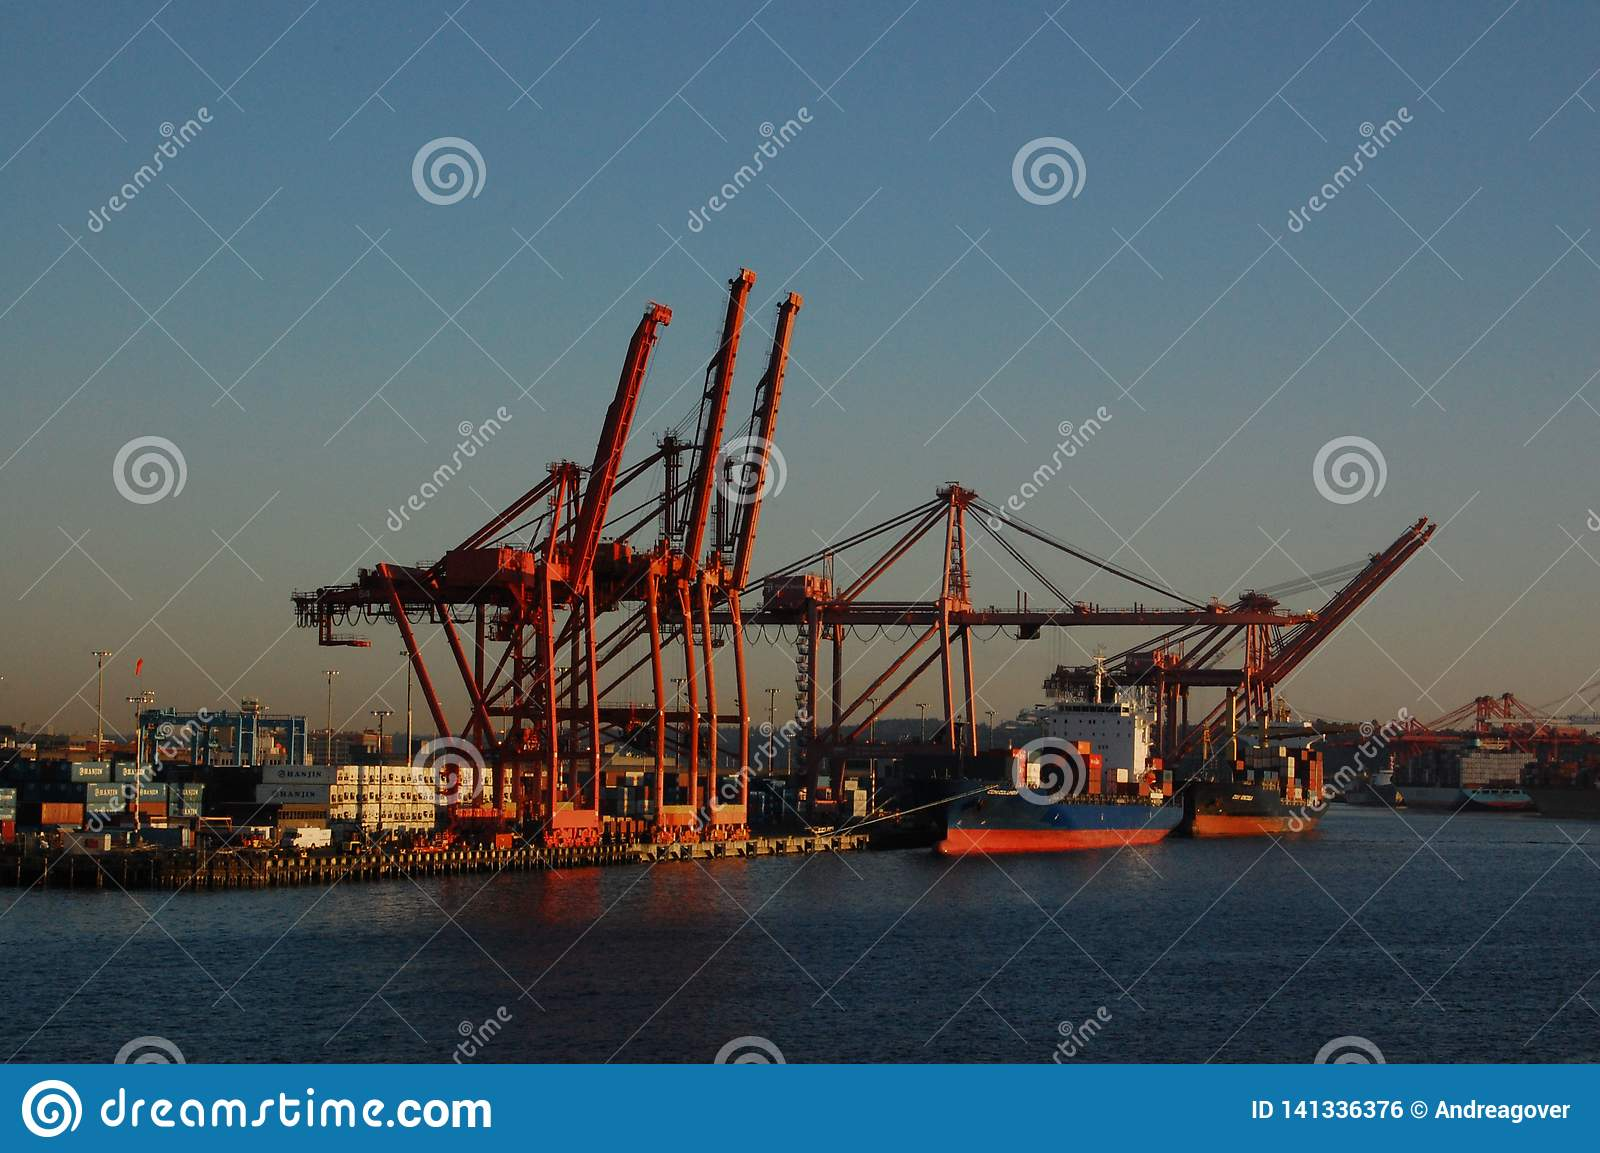 Shipping Cranes on a Waterfront